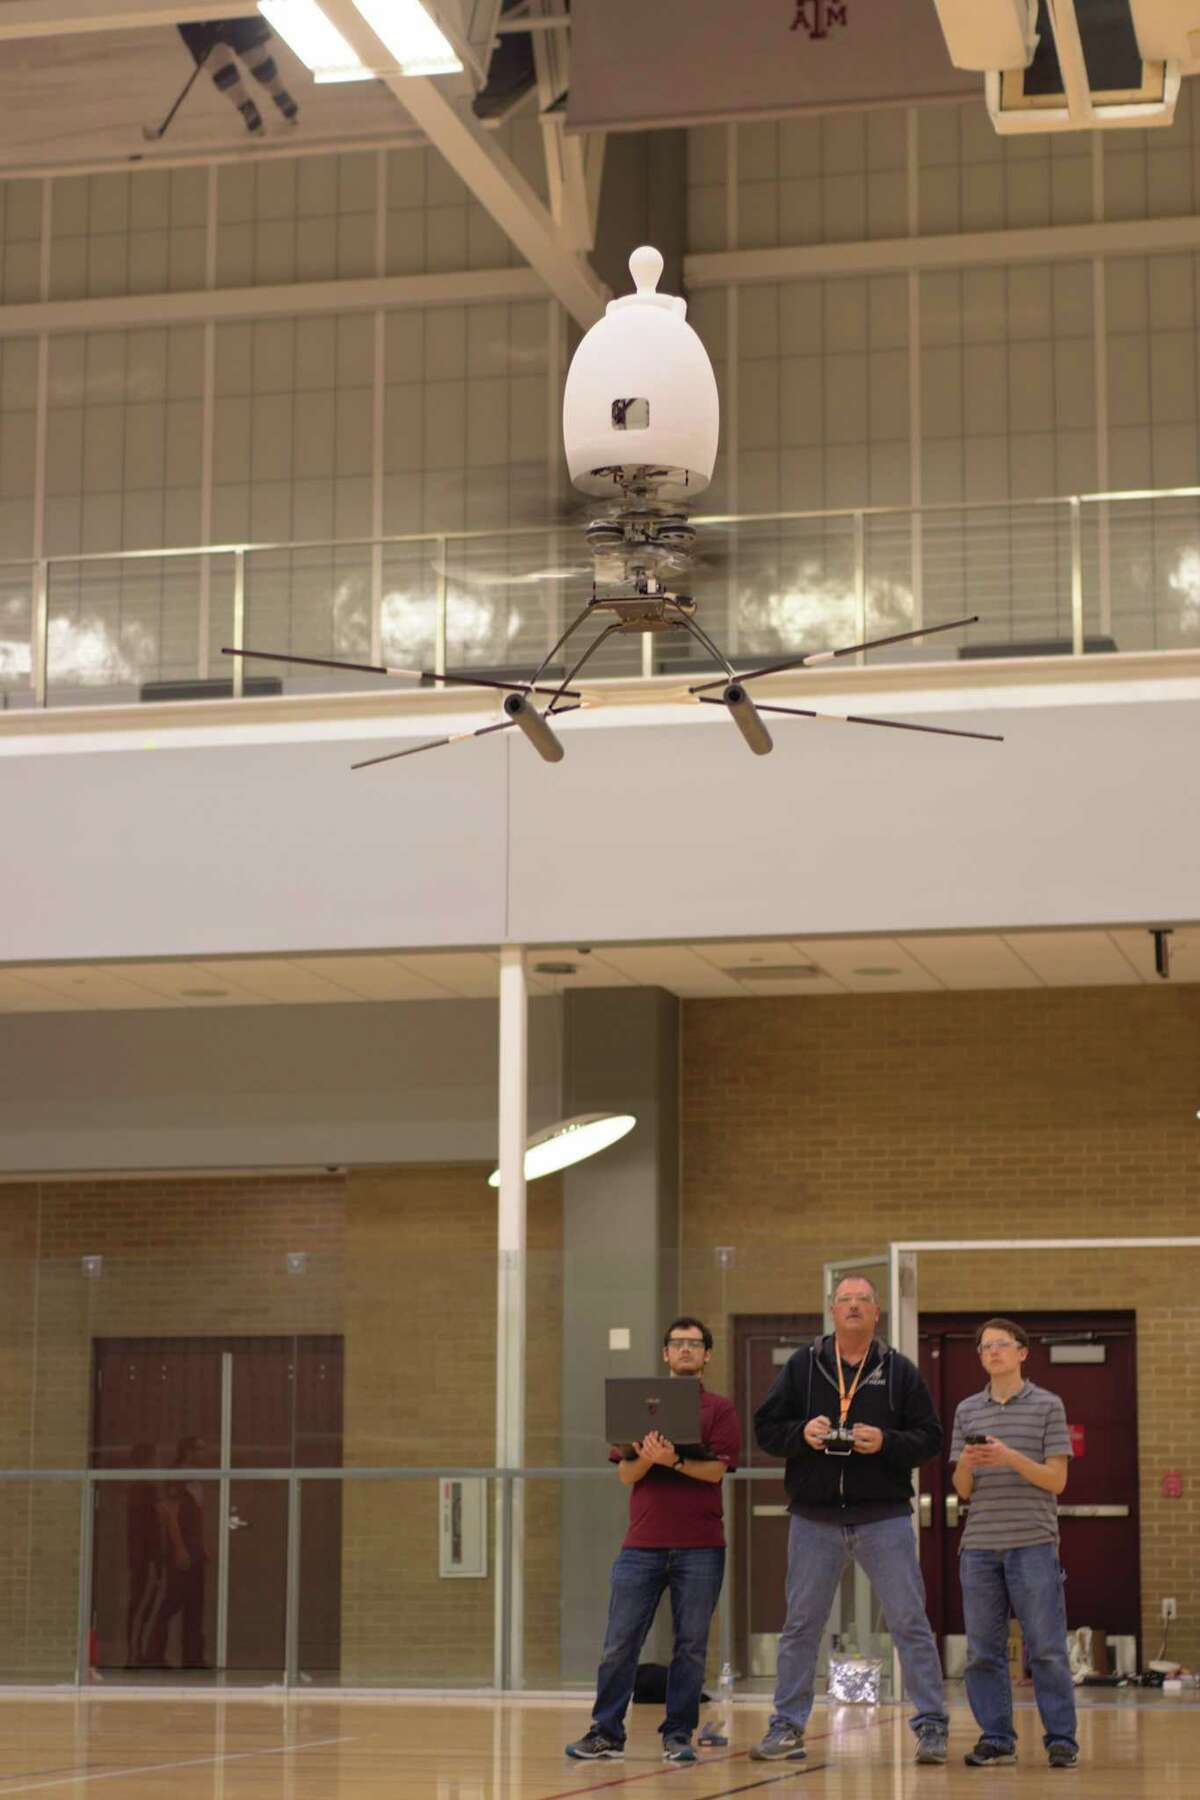 The Texas A&M Harmony team tests a 1/3 scale model of their Aria personal flying device. Pictured, left to right, are Hunter Denton, Scott McHarg and David Coleman.